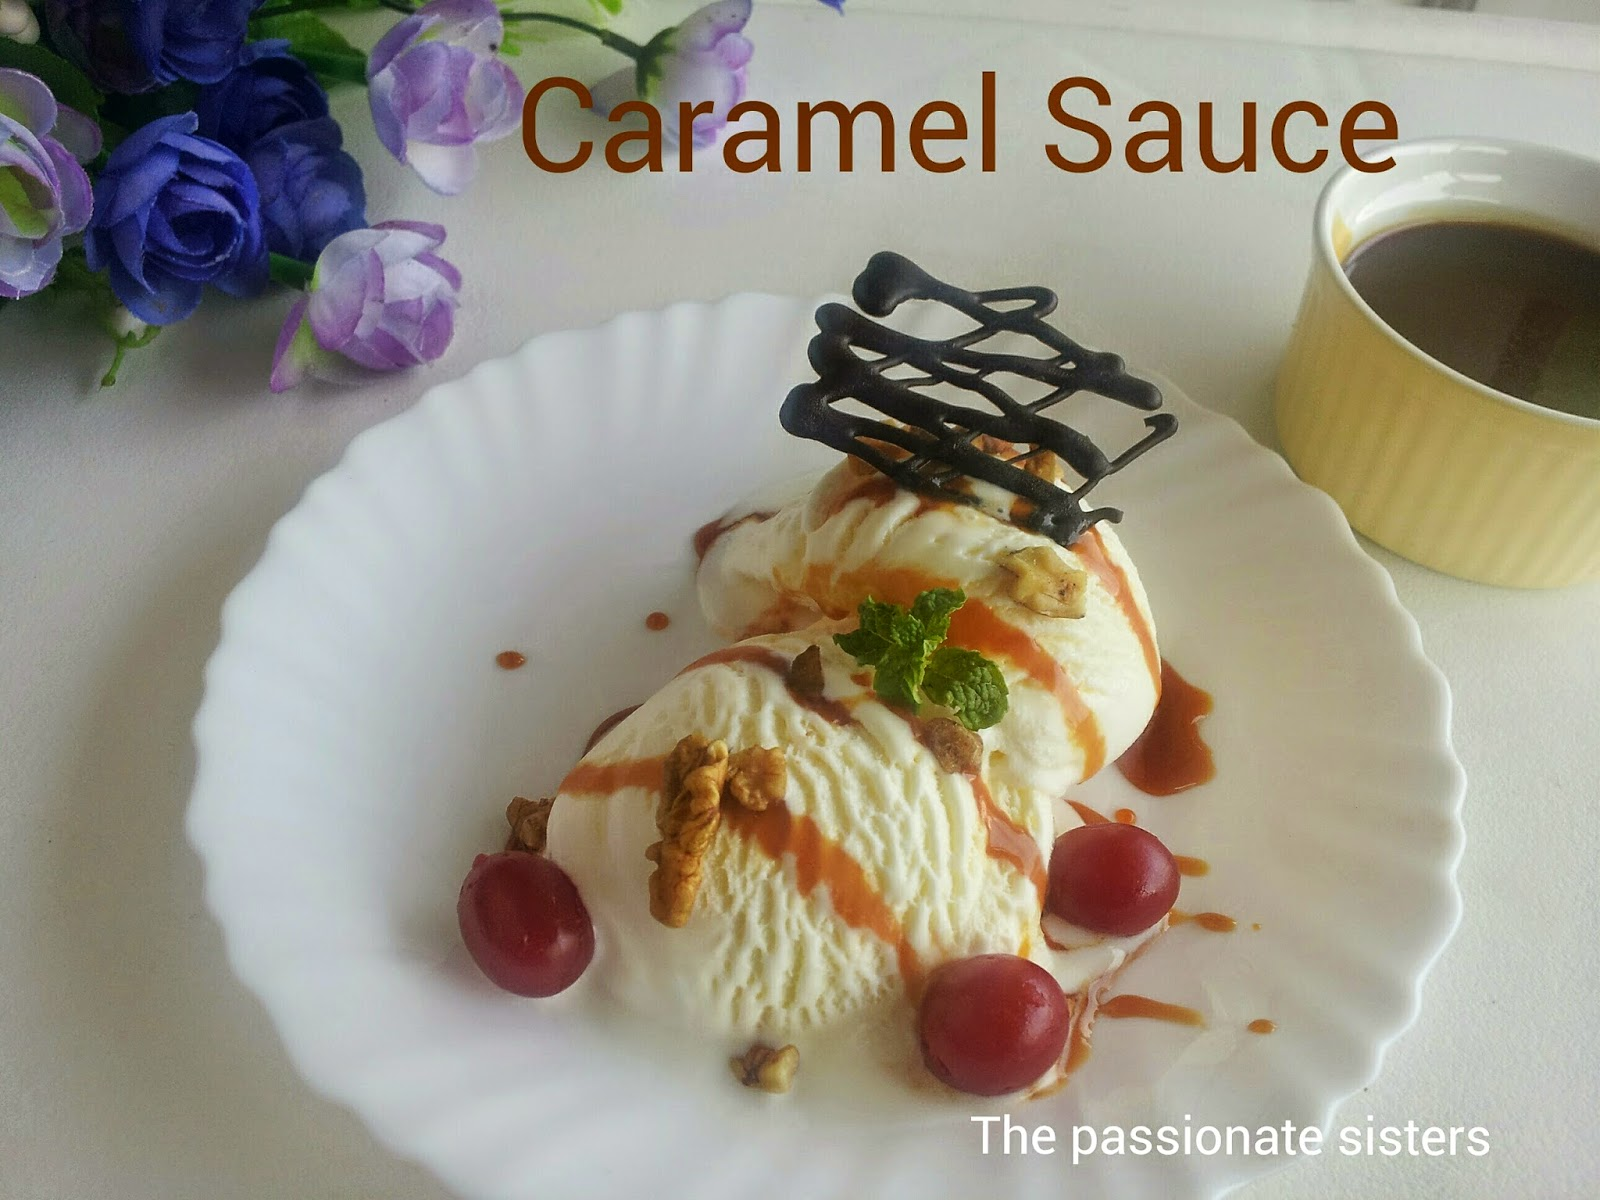 Caramel Sauce without cream